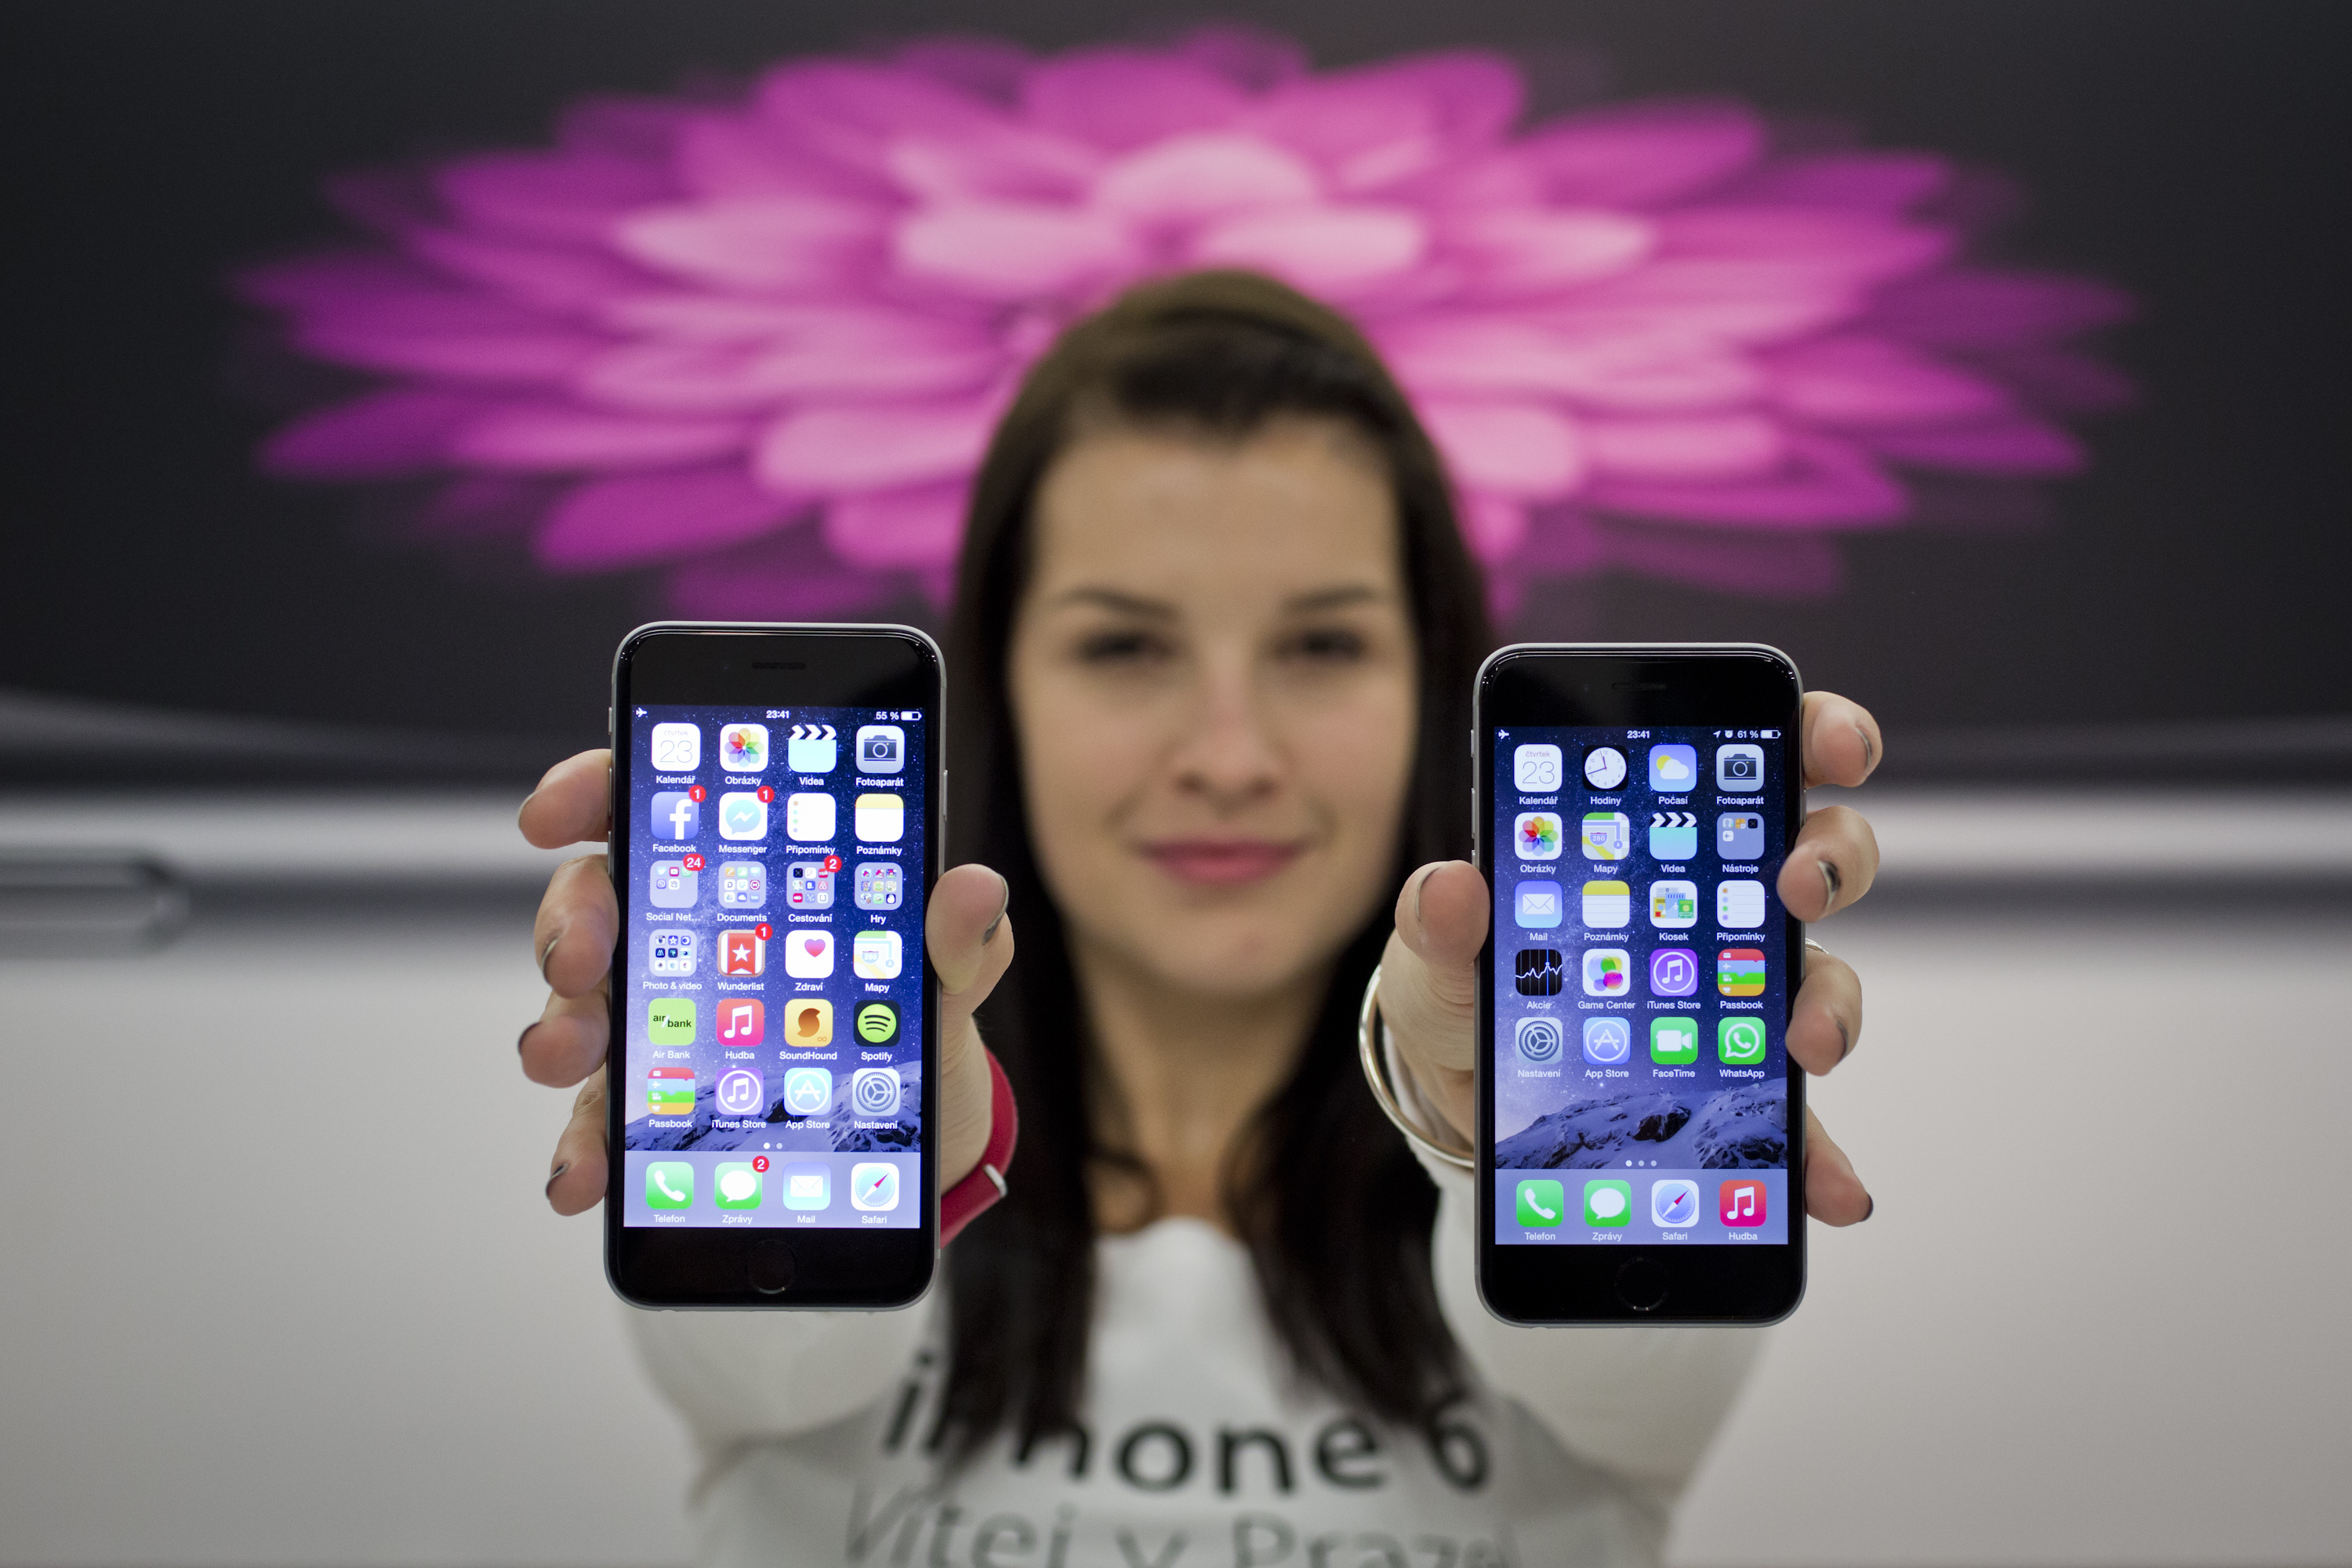 A seller poses with iPhone 6 during a midnight sale of the new iPhone 6 and 6 Plus at Apple Premium Reseller store on October 24, 2014 in Prague, Czech Republic.